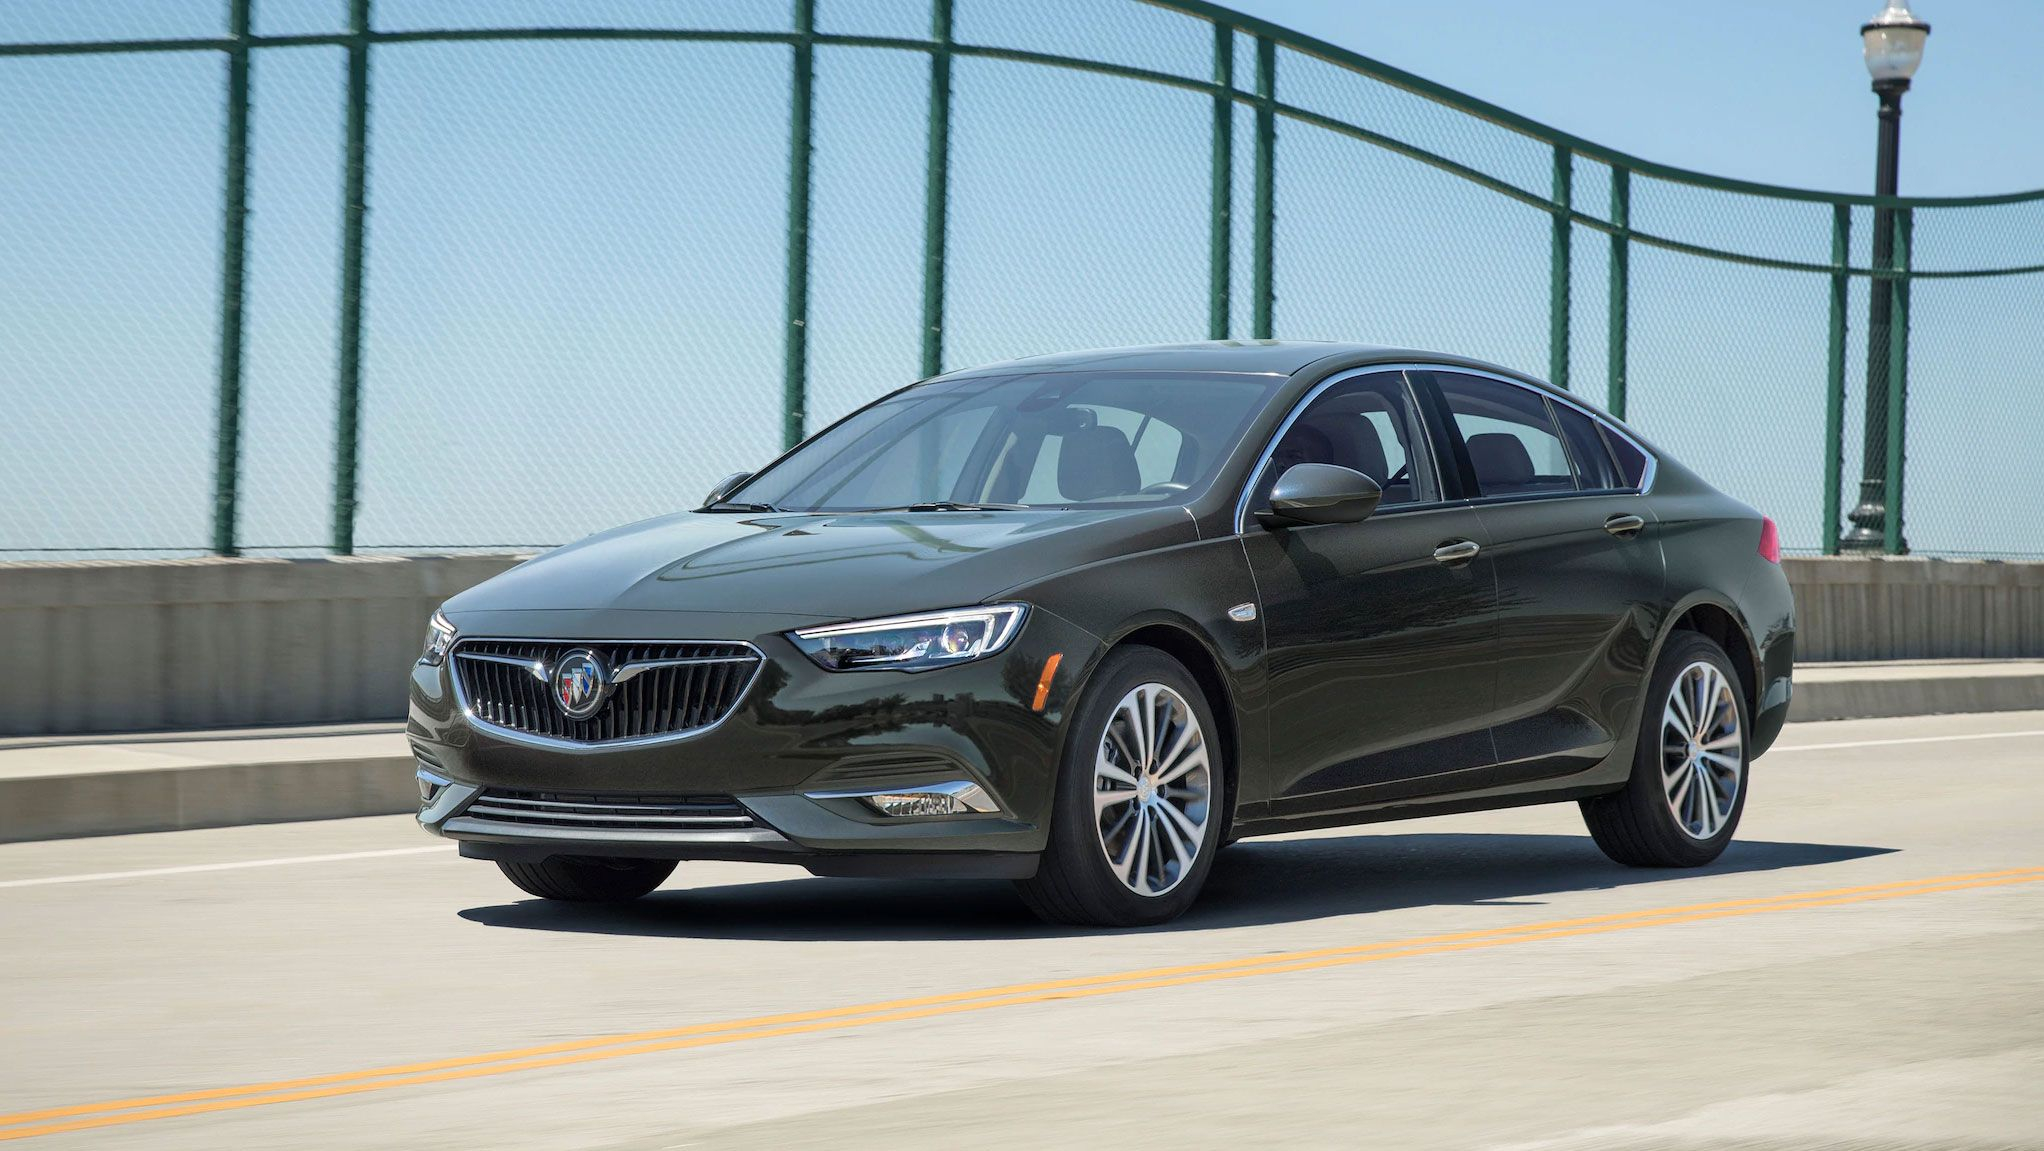 2020 Buick Regal Sportback Review, Pricing, And Specs 2021 Buick Regal Brochure, Build, Models